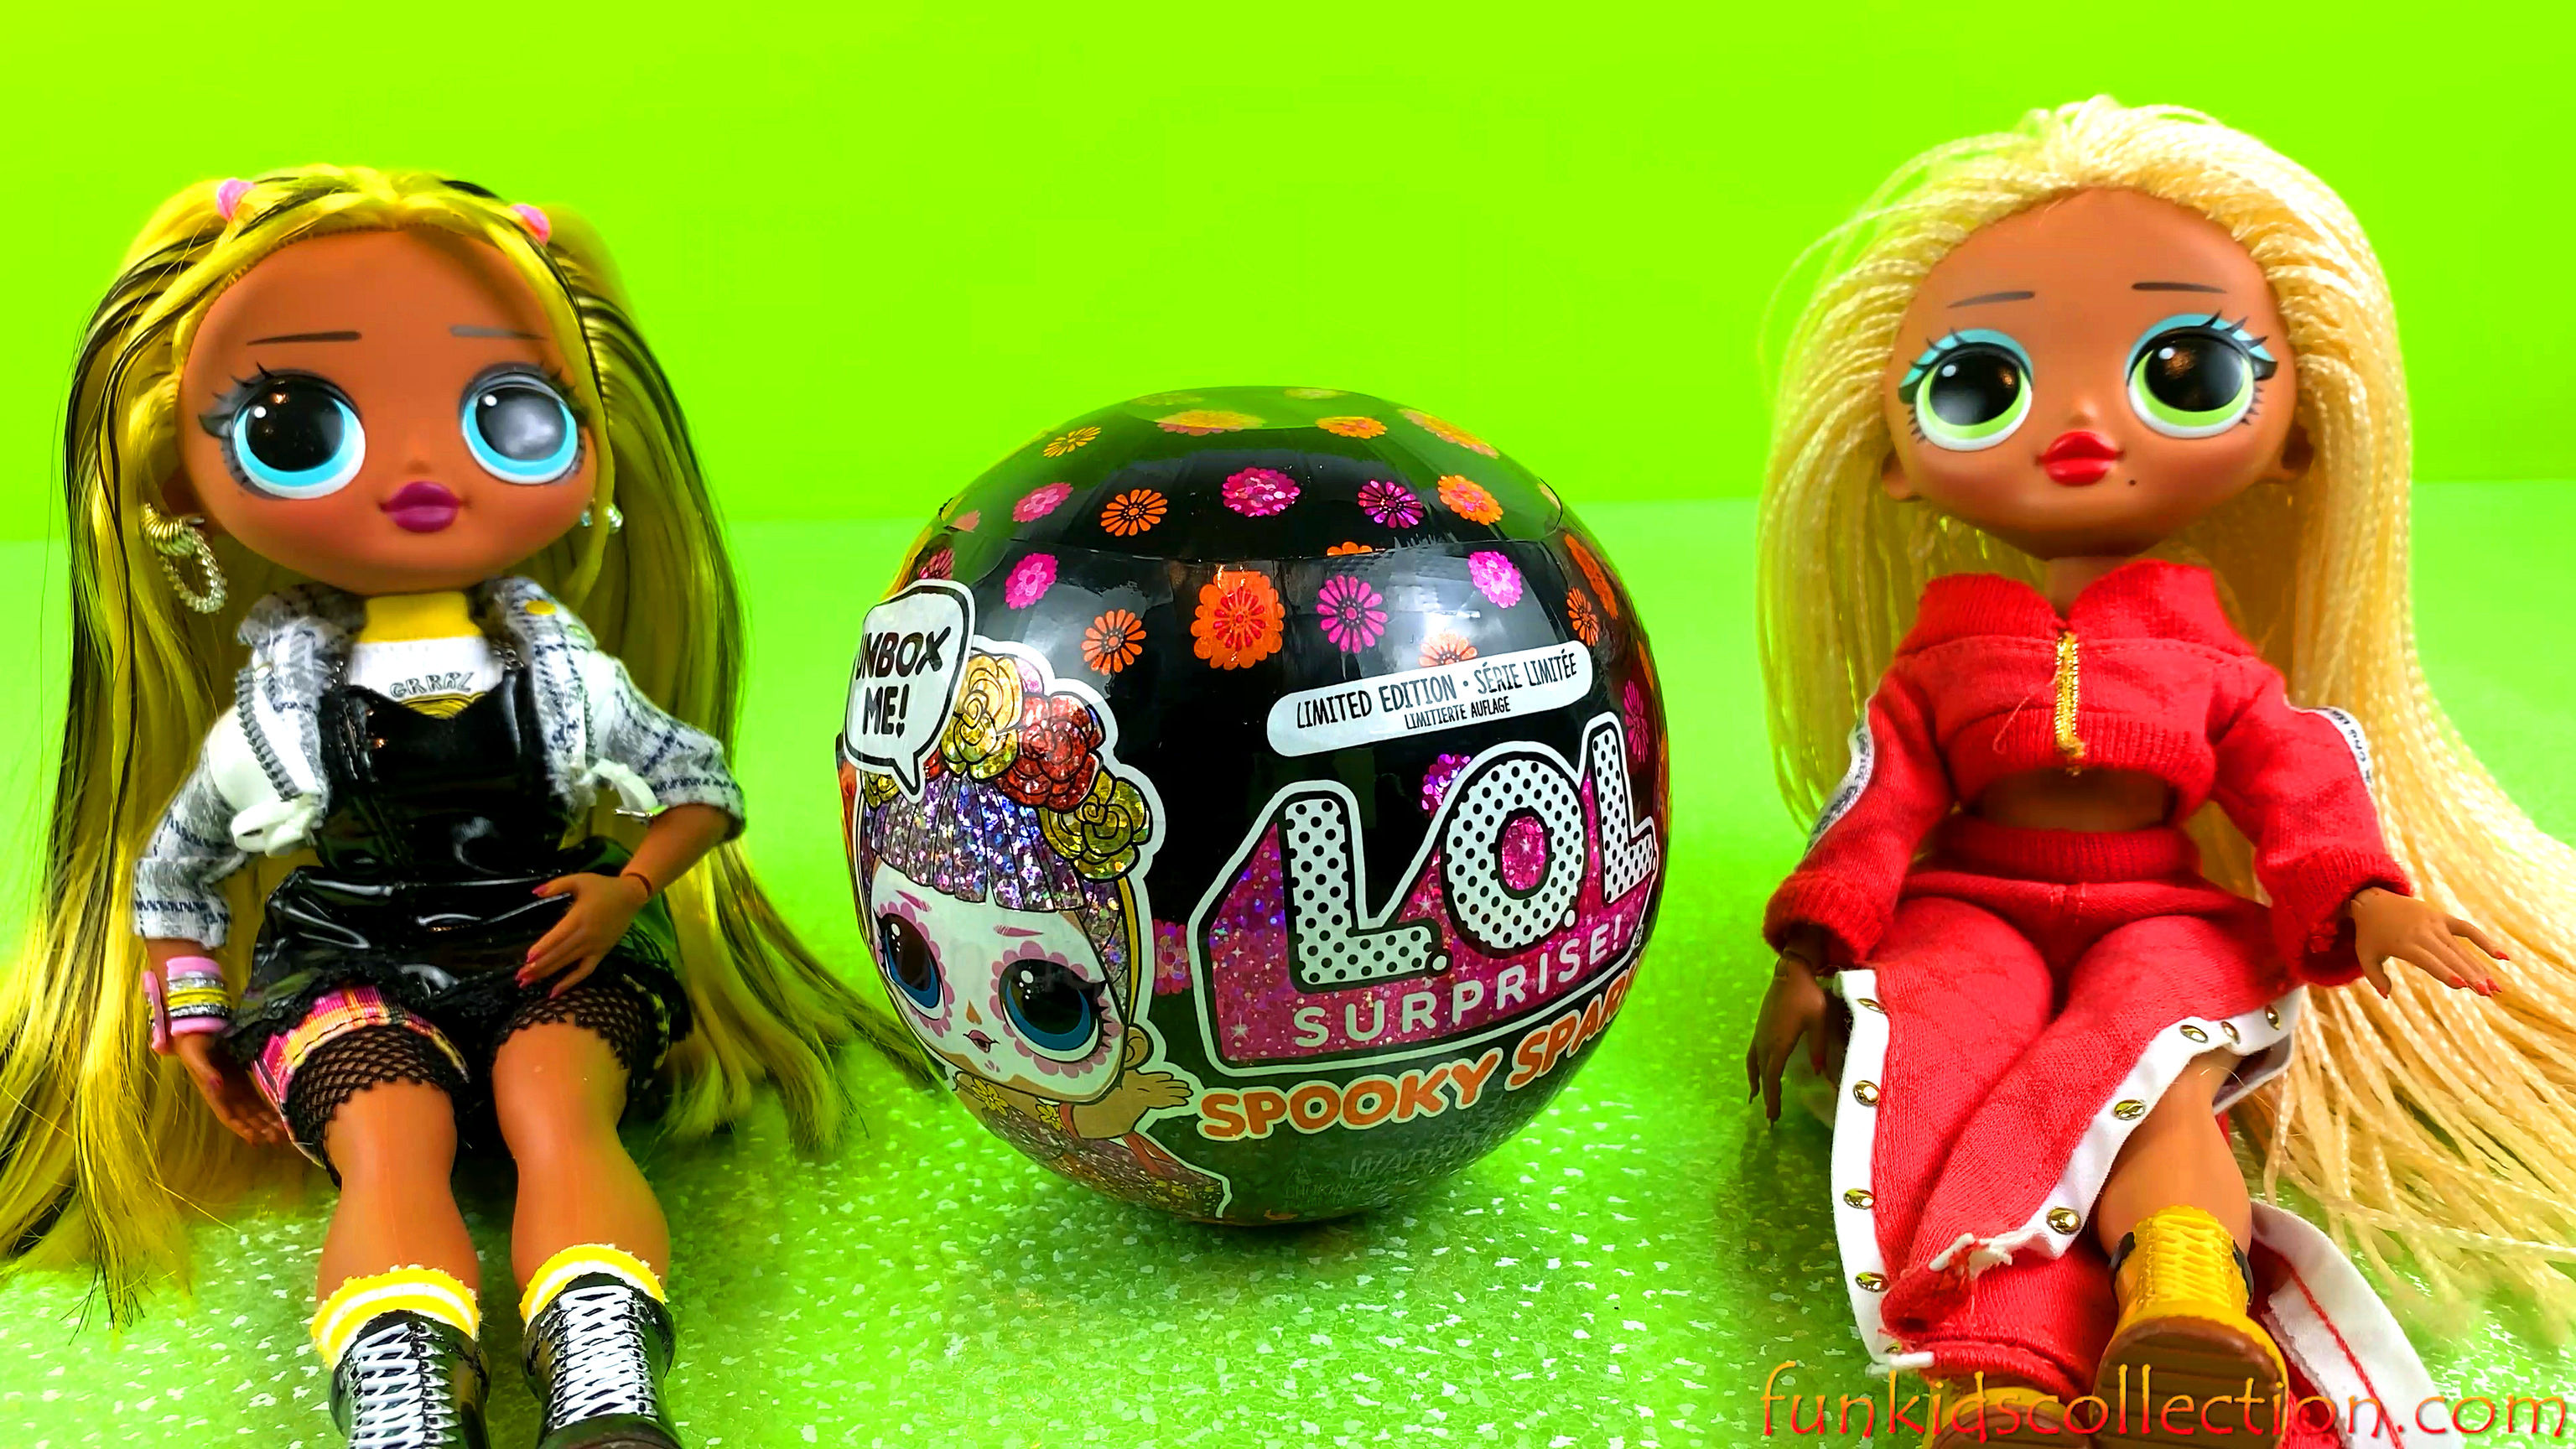 Happy Halloween with LOL Spooky | LOL Surprise Spooky Sparkle Series Limited Edition | EBD Toys